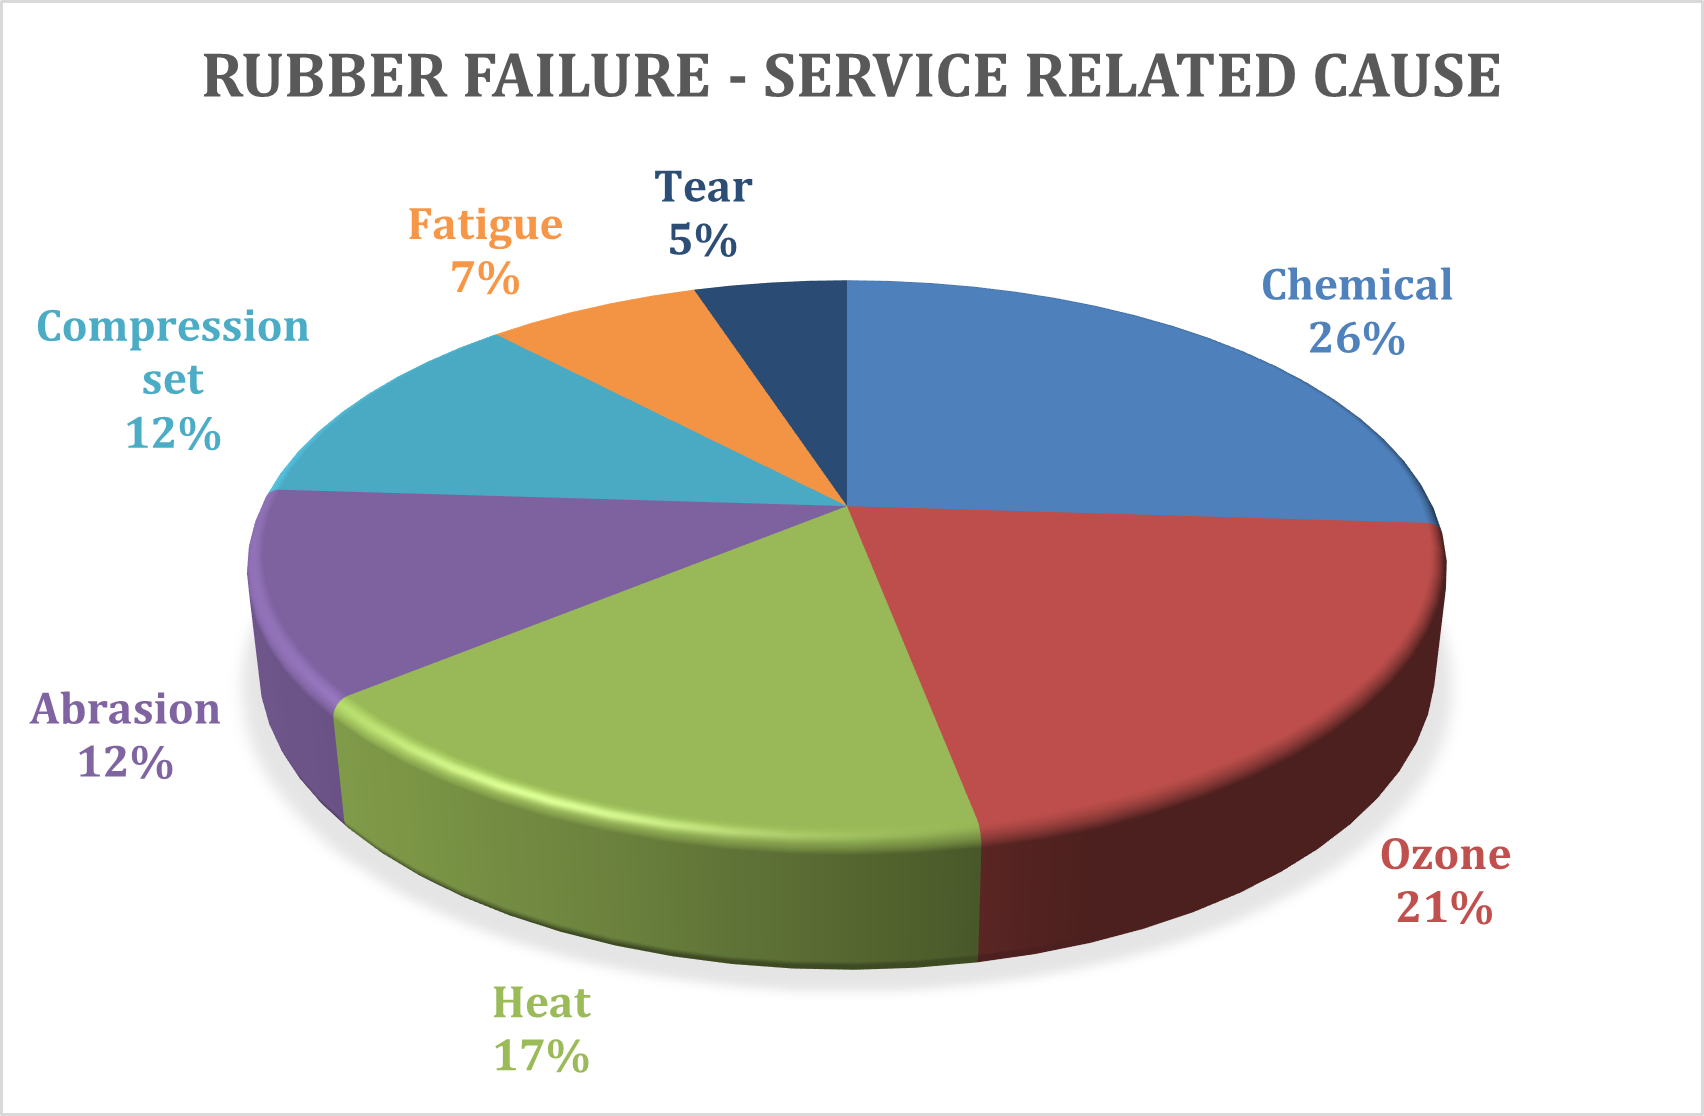 Service-related causes of rubber failure chart